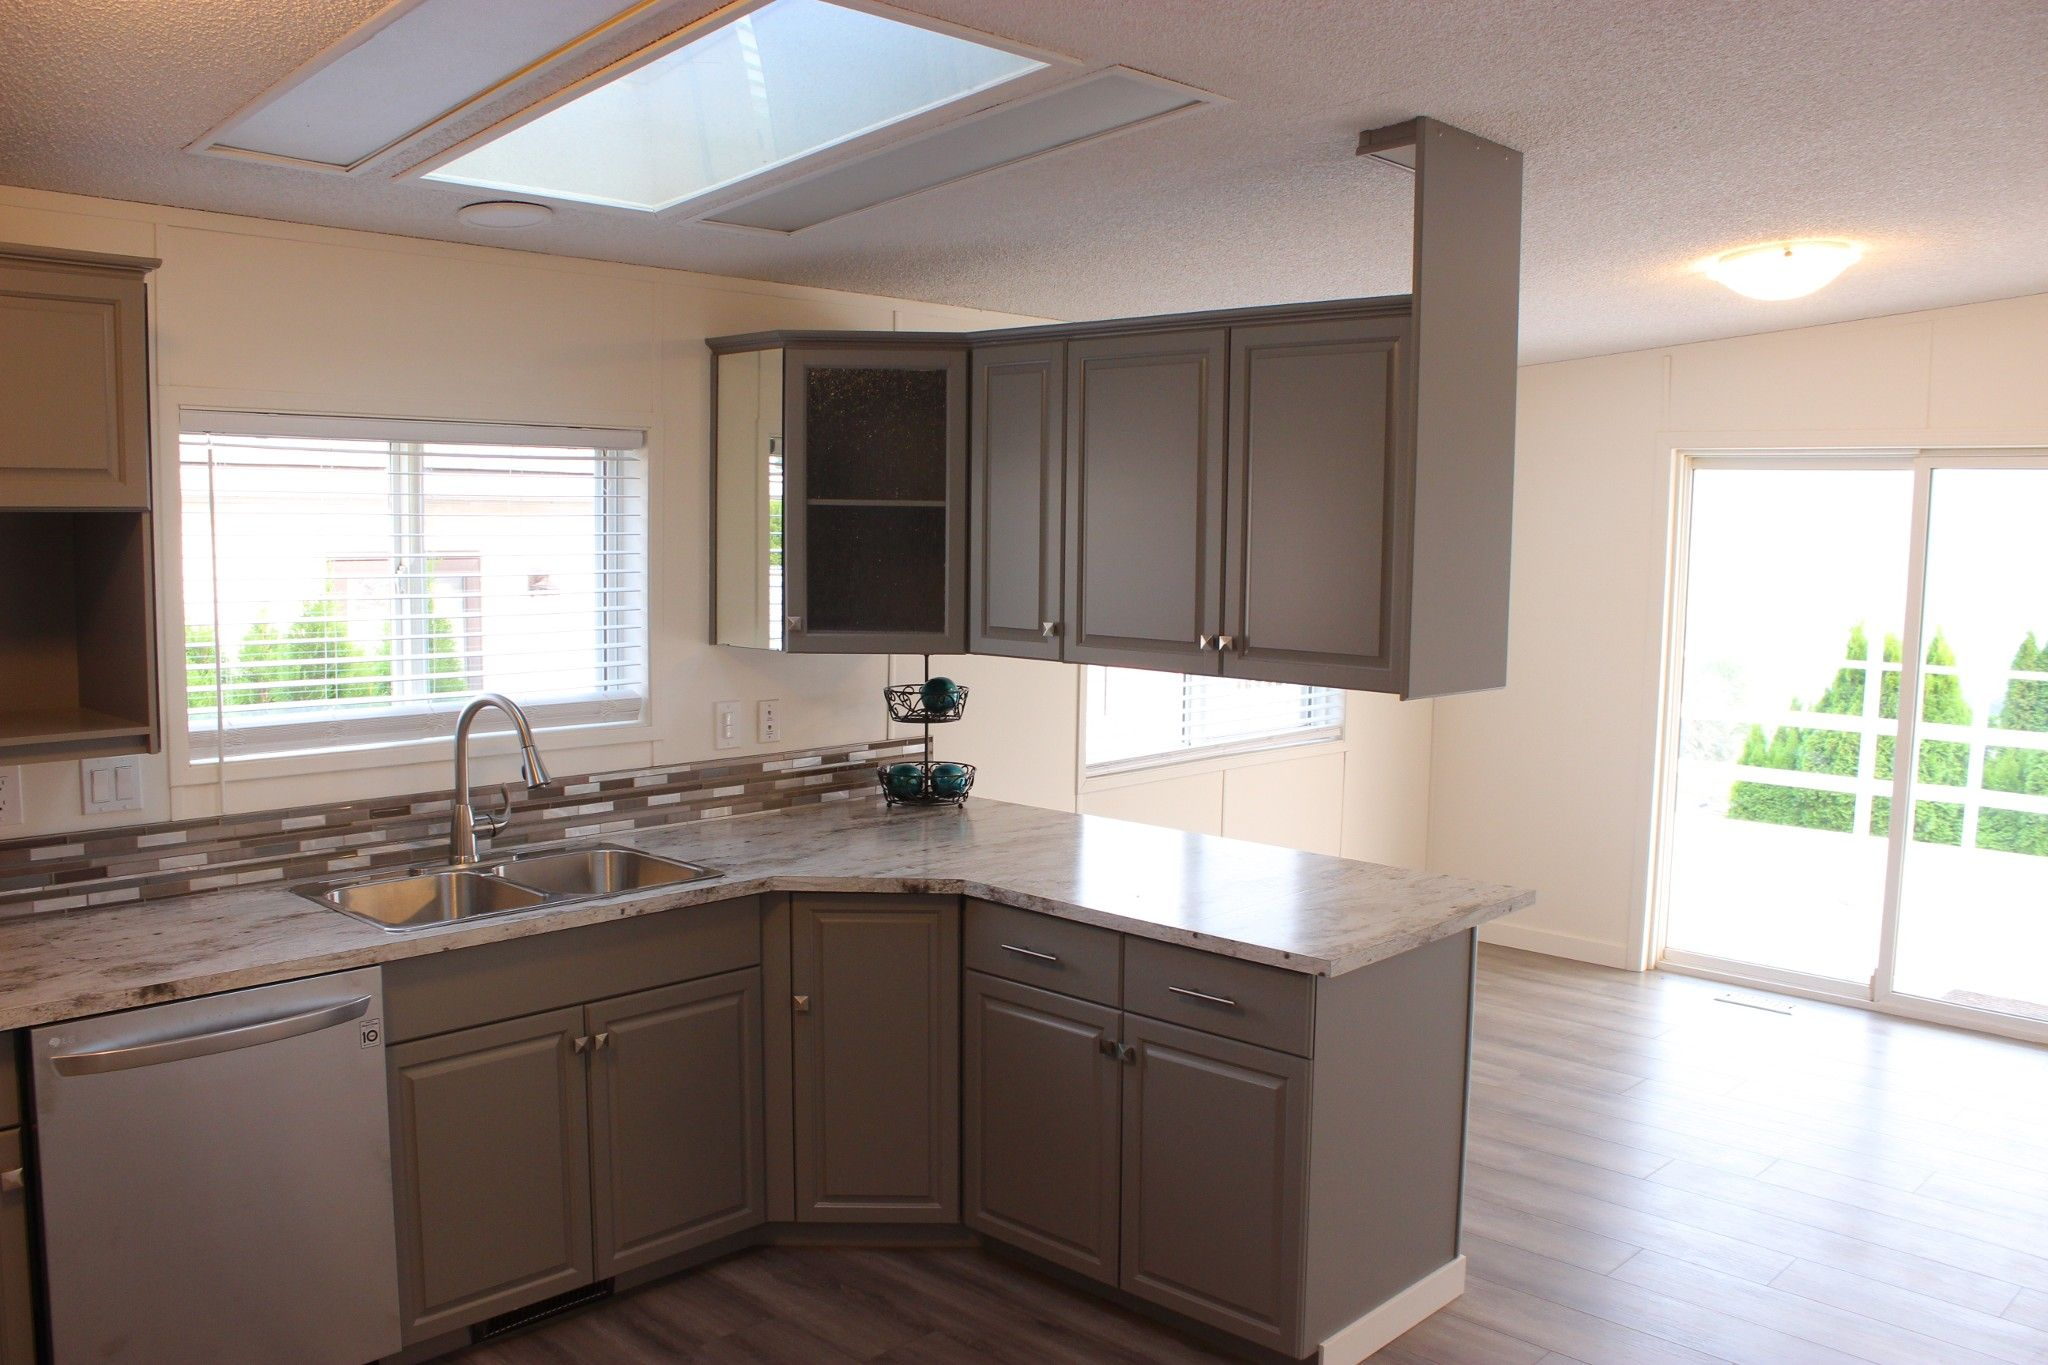 Photo 6: Photos: 22 3099 E Shuswap Road in Kamloops: South Thompson Valley Manufactured Home for sale : MLS®# 147827